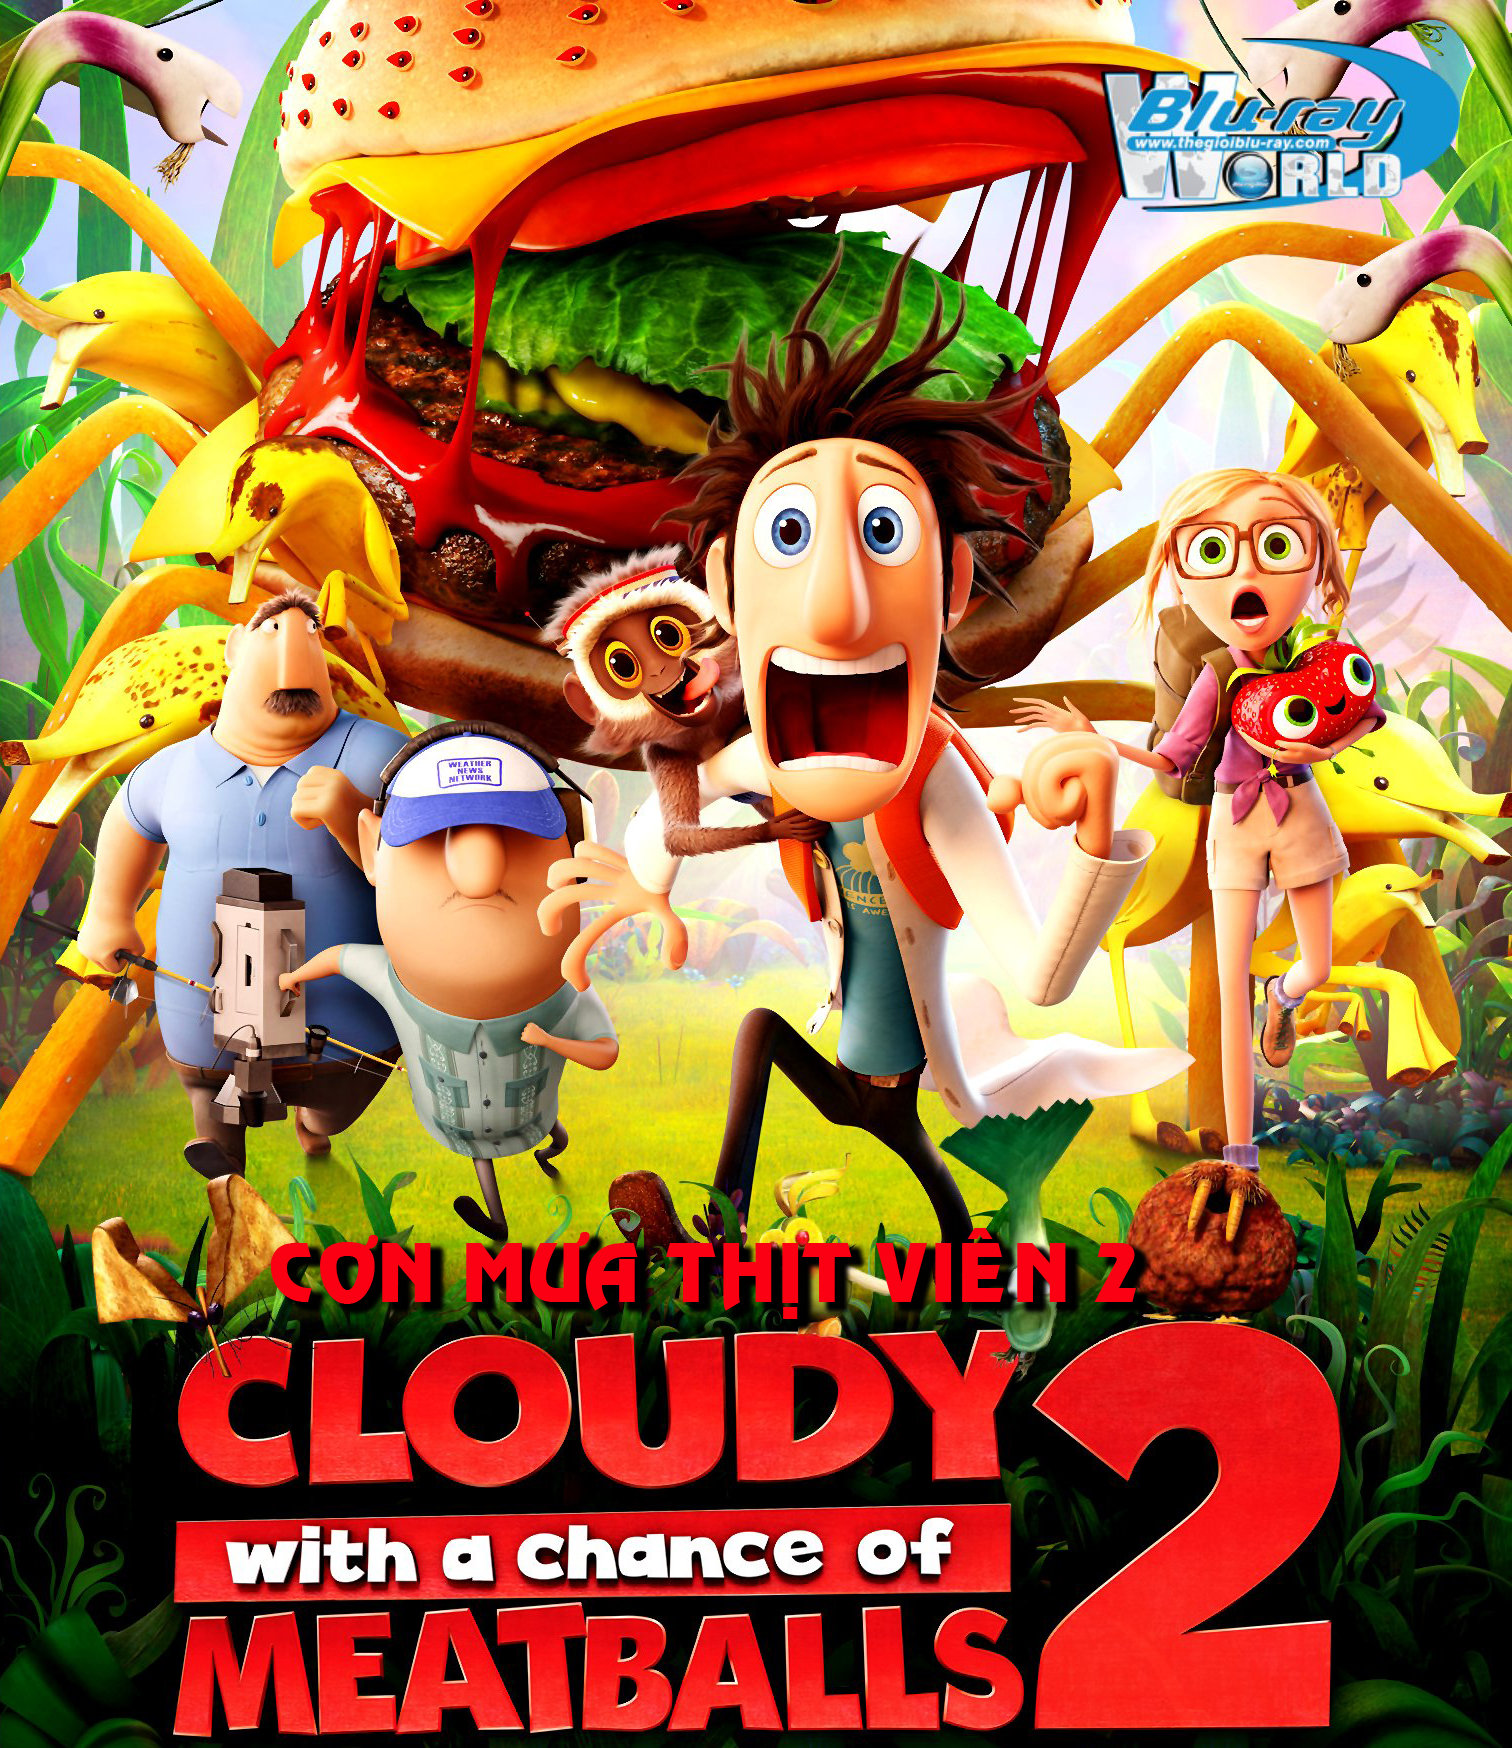 B1589. Cloudy with a Chance of Meatballs 2 - CƠN MƯA THỊT VIÊN 2 2D 25G(DTS-HD MA 5.1)